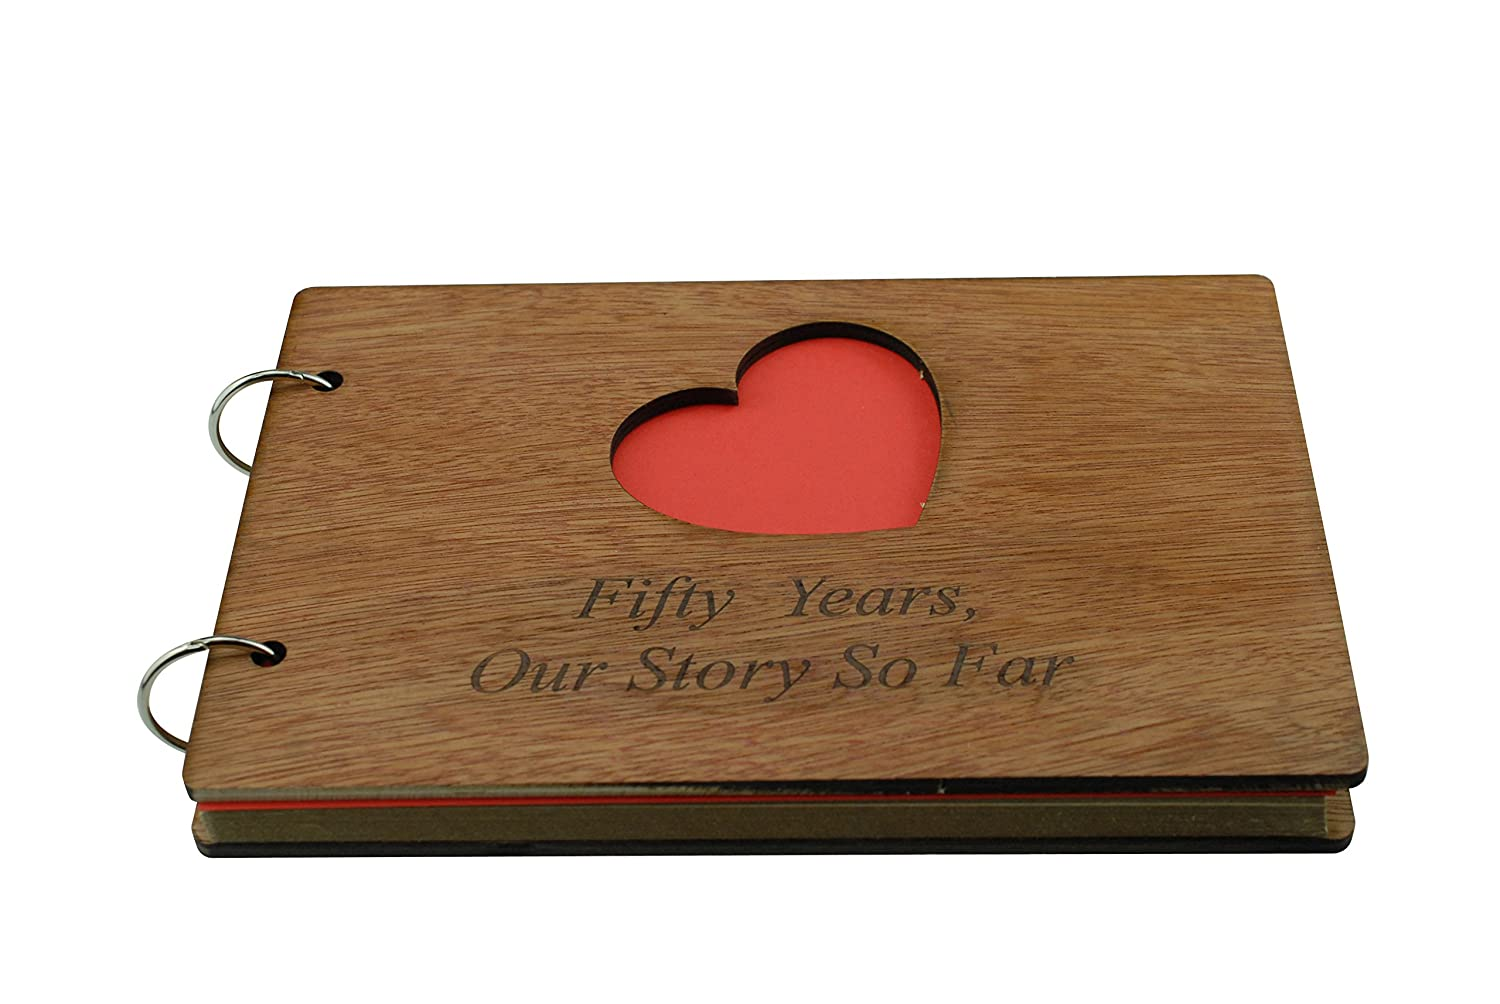 Photo album or Notebook Idea For 50th Anniversary Scrapbook 50 Years Our Story So Far